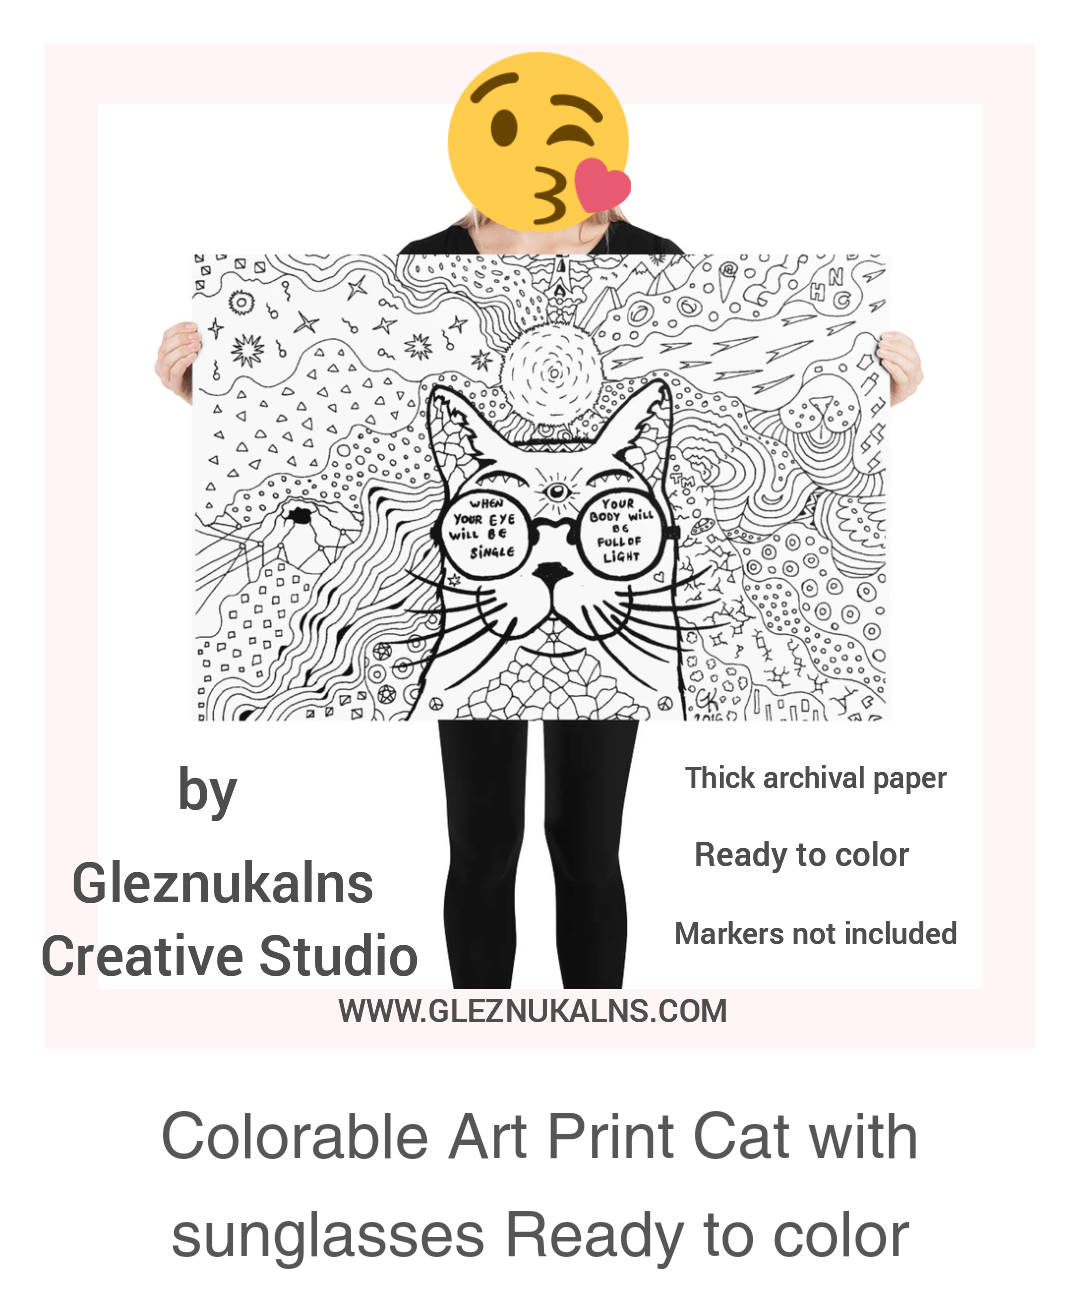 Colorable Art Print Cat with sunglasses Ready to color